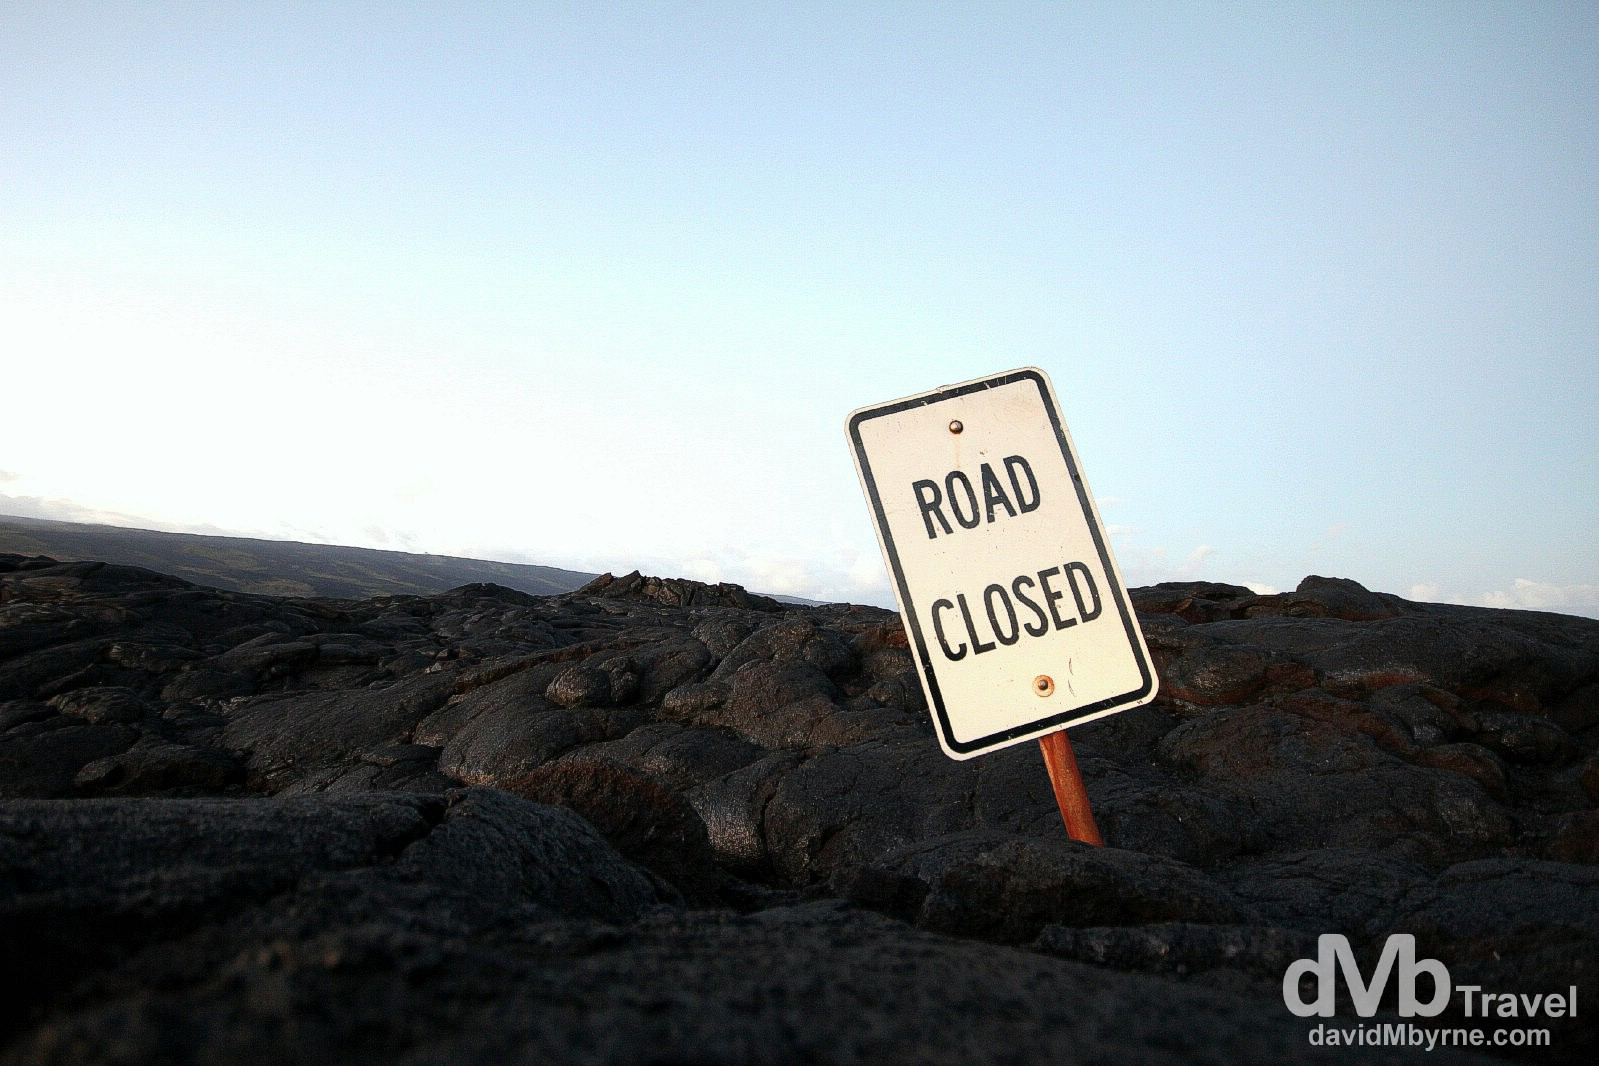 Road closed indeed. A single road sign is all that's left of a road buried in lava on the south coast of The Big Island, Hawaii. March 1st 2013.